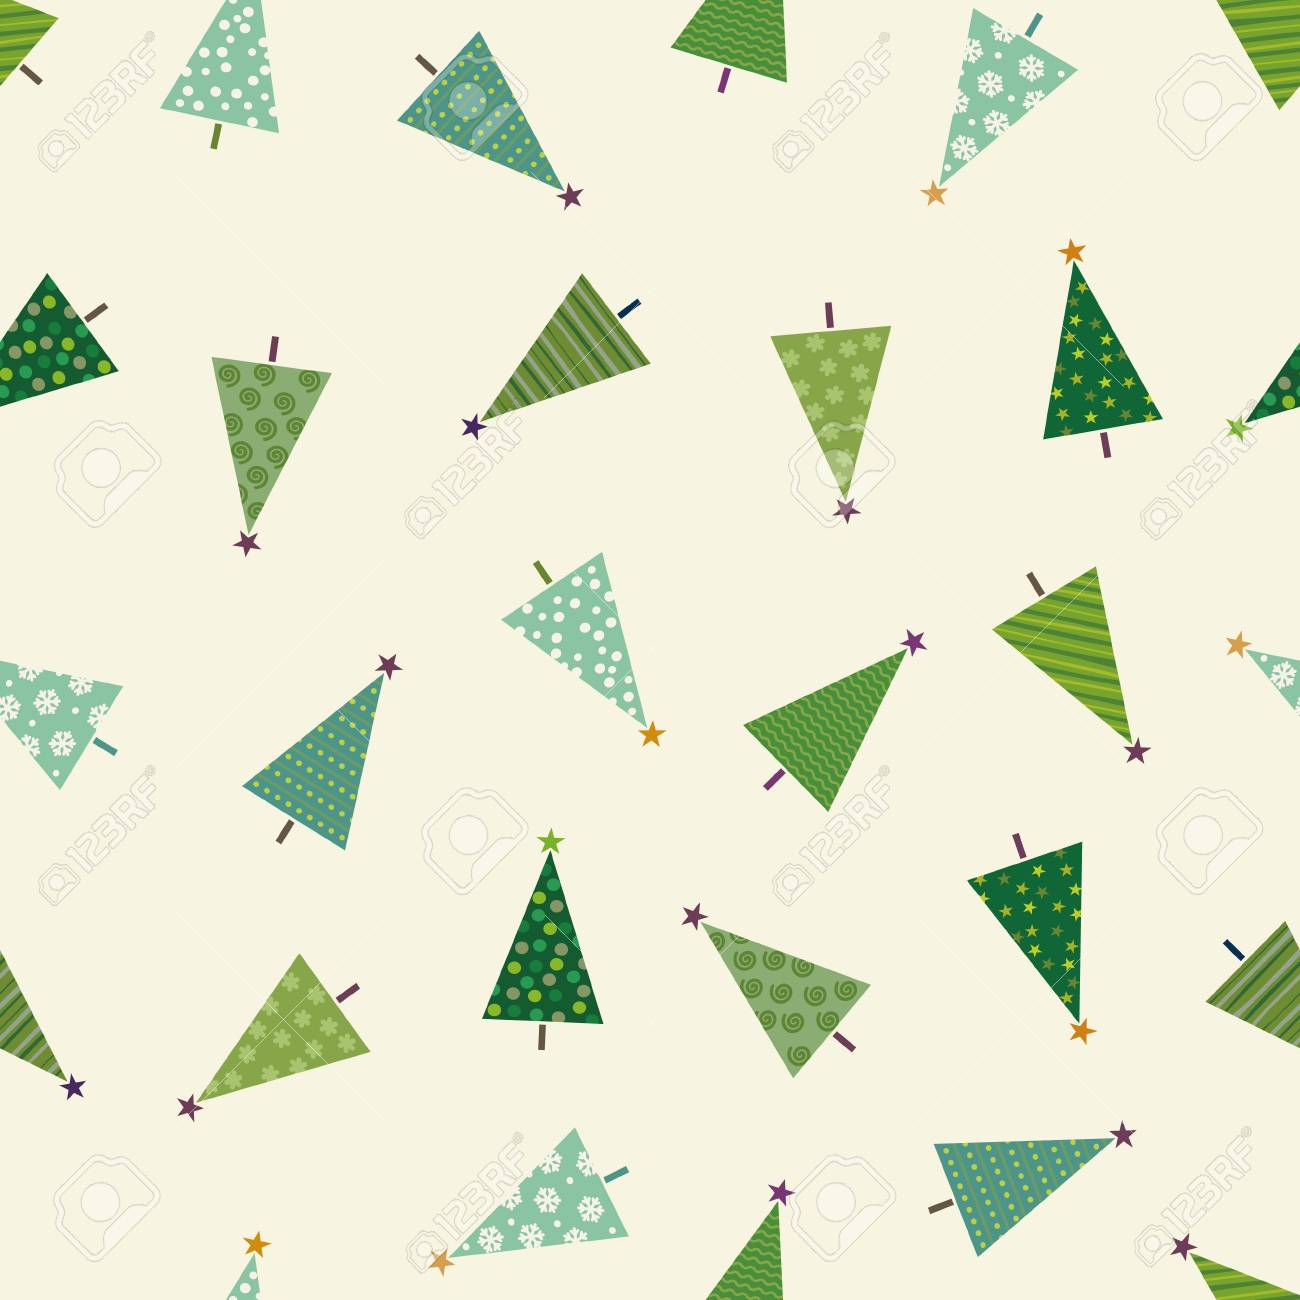 Colorful Christmas Pattern With Christmas Trees Royalty Free ...